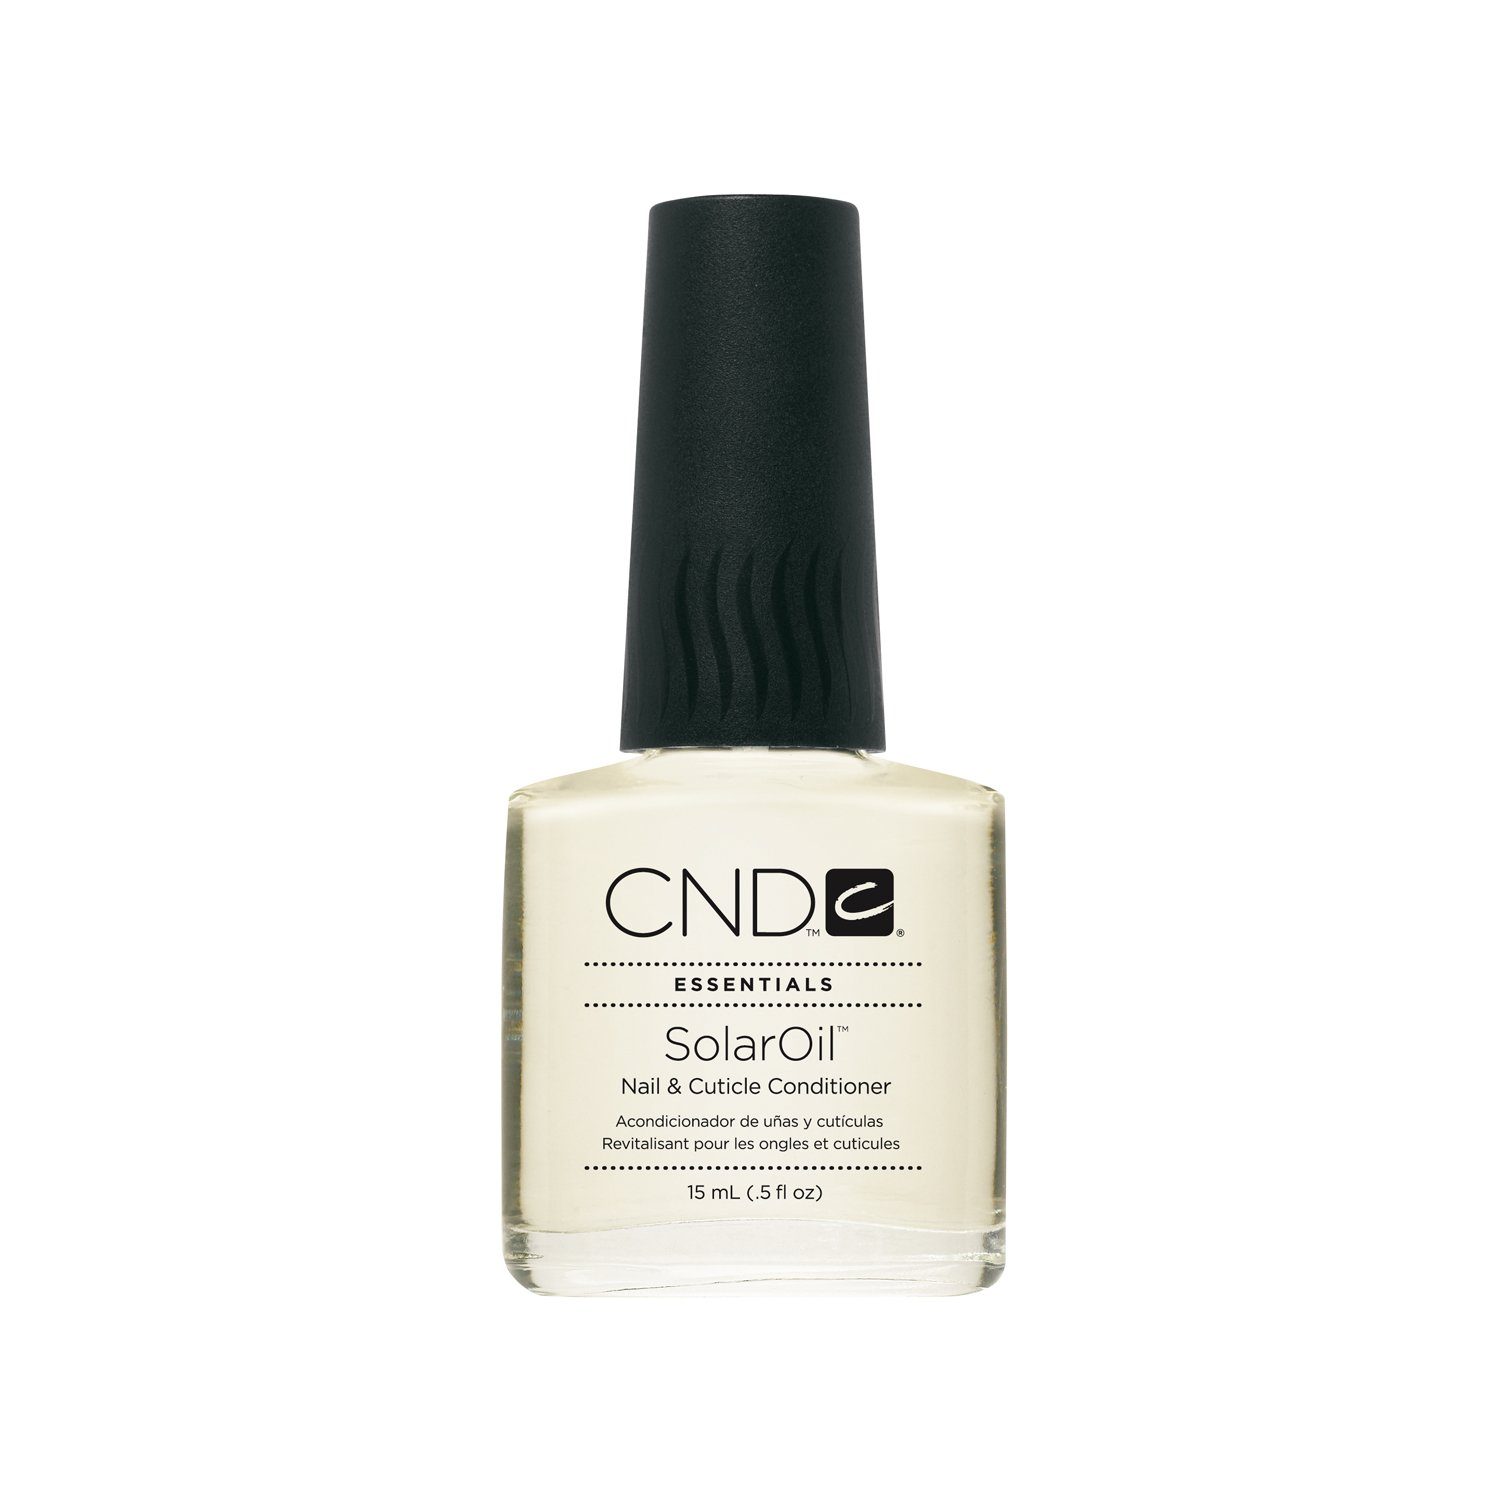 CND Solar Oil Nail and Cuticle Conditioner 15 ml: Amazon.co.uk: Beauty